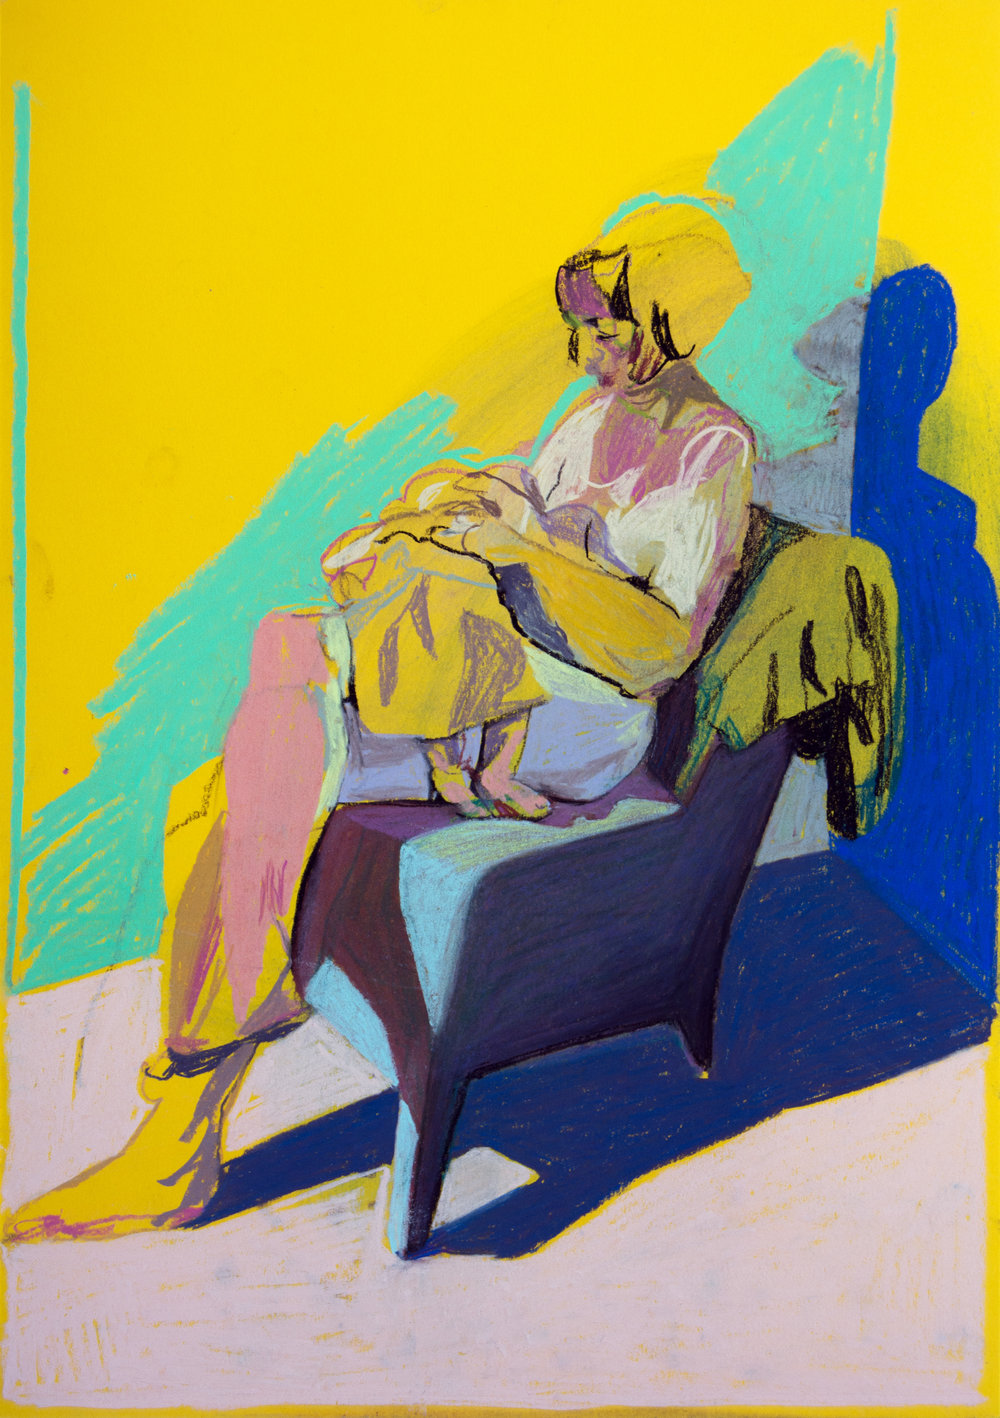 'Mother, model and child on yellow with purple shadow', 2018, pastel, 42 x 29.7cm, £450    Available from  Partnership Editions